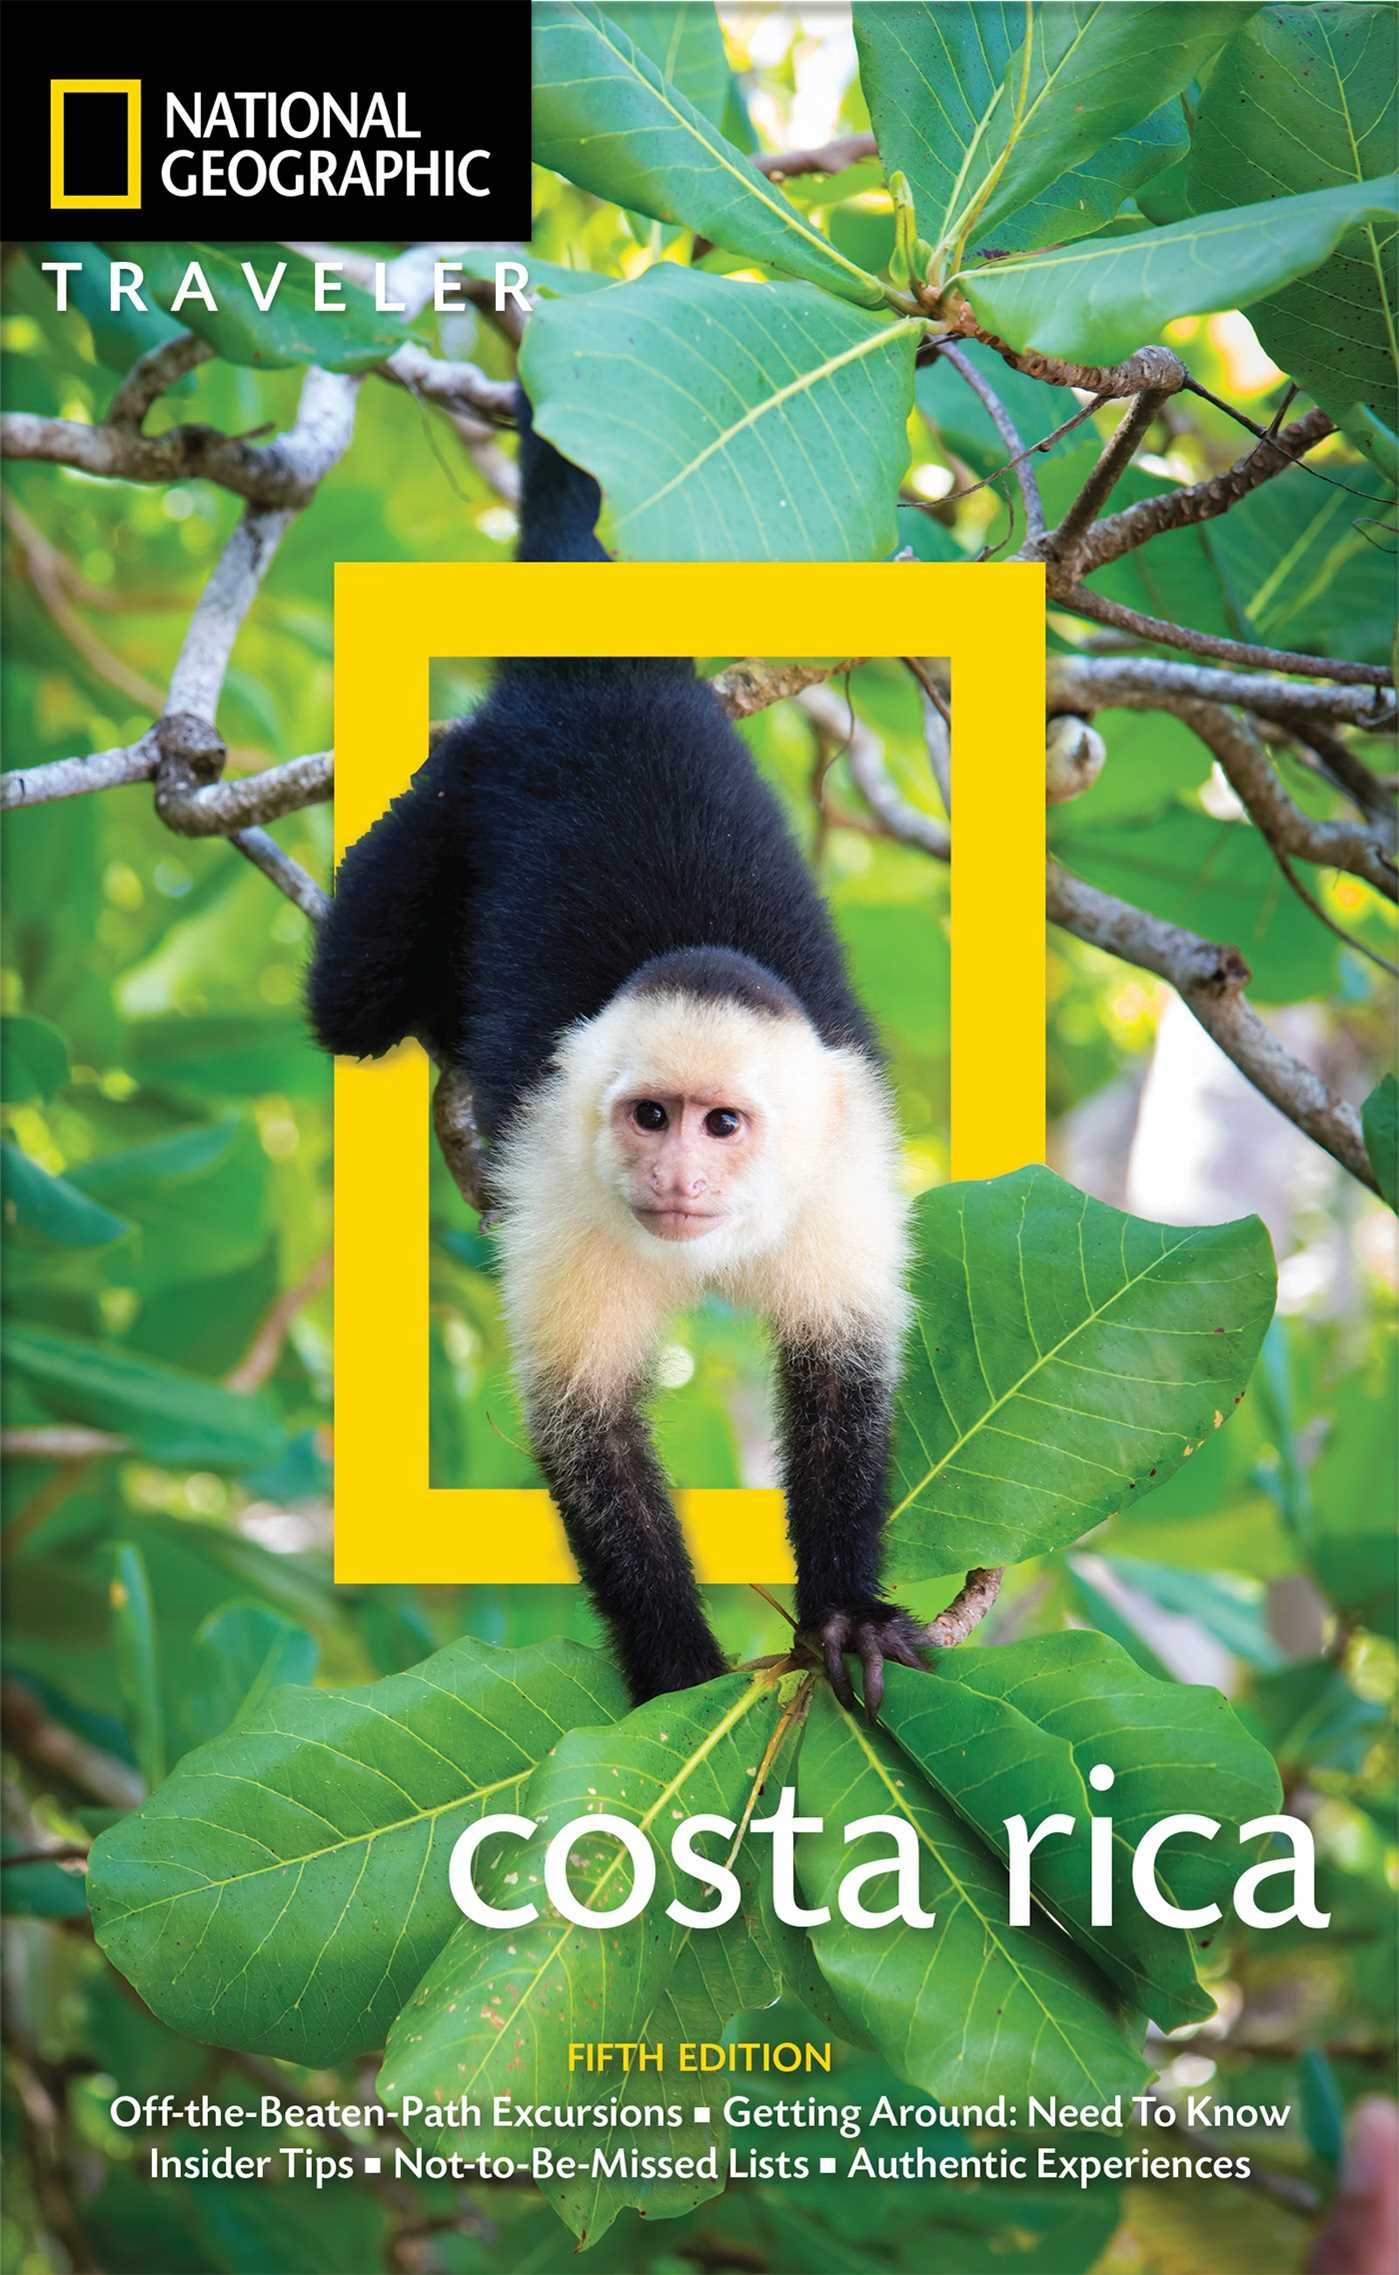 Nat geo traveler costa rica 9781426218286 hr